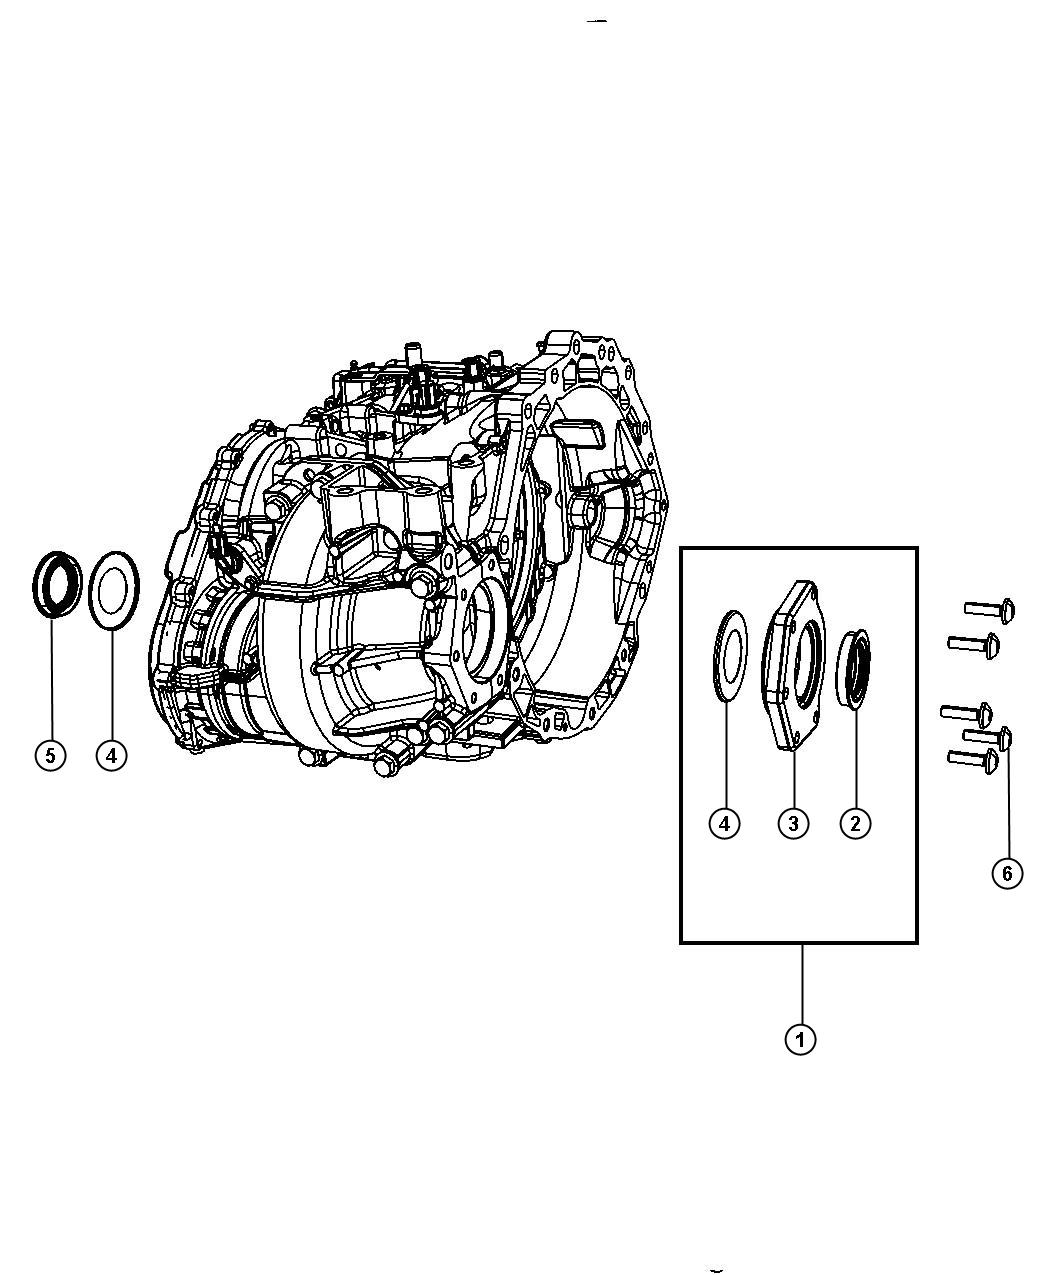 2017 Dodge Journey Extension. Transmission. Adapters